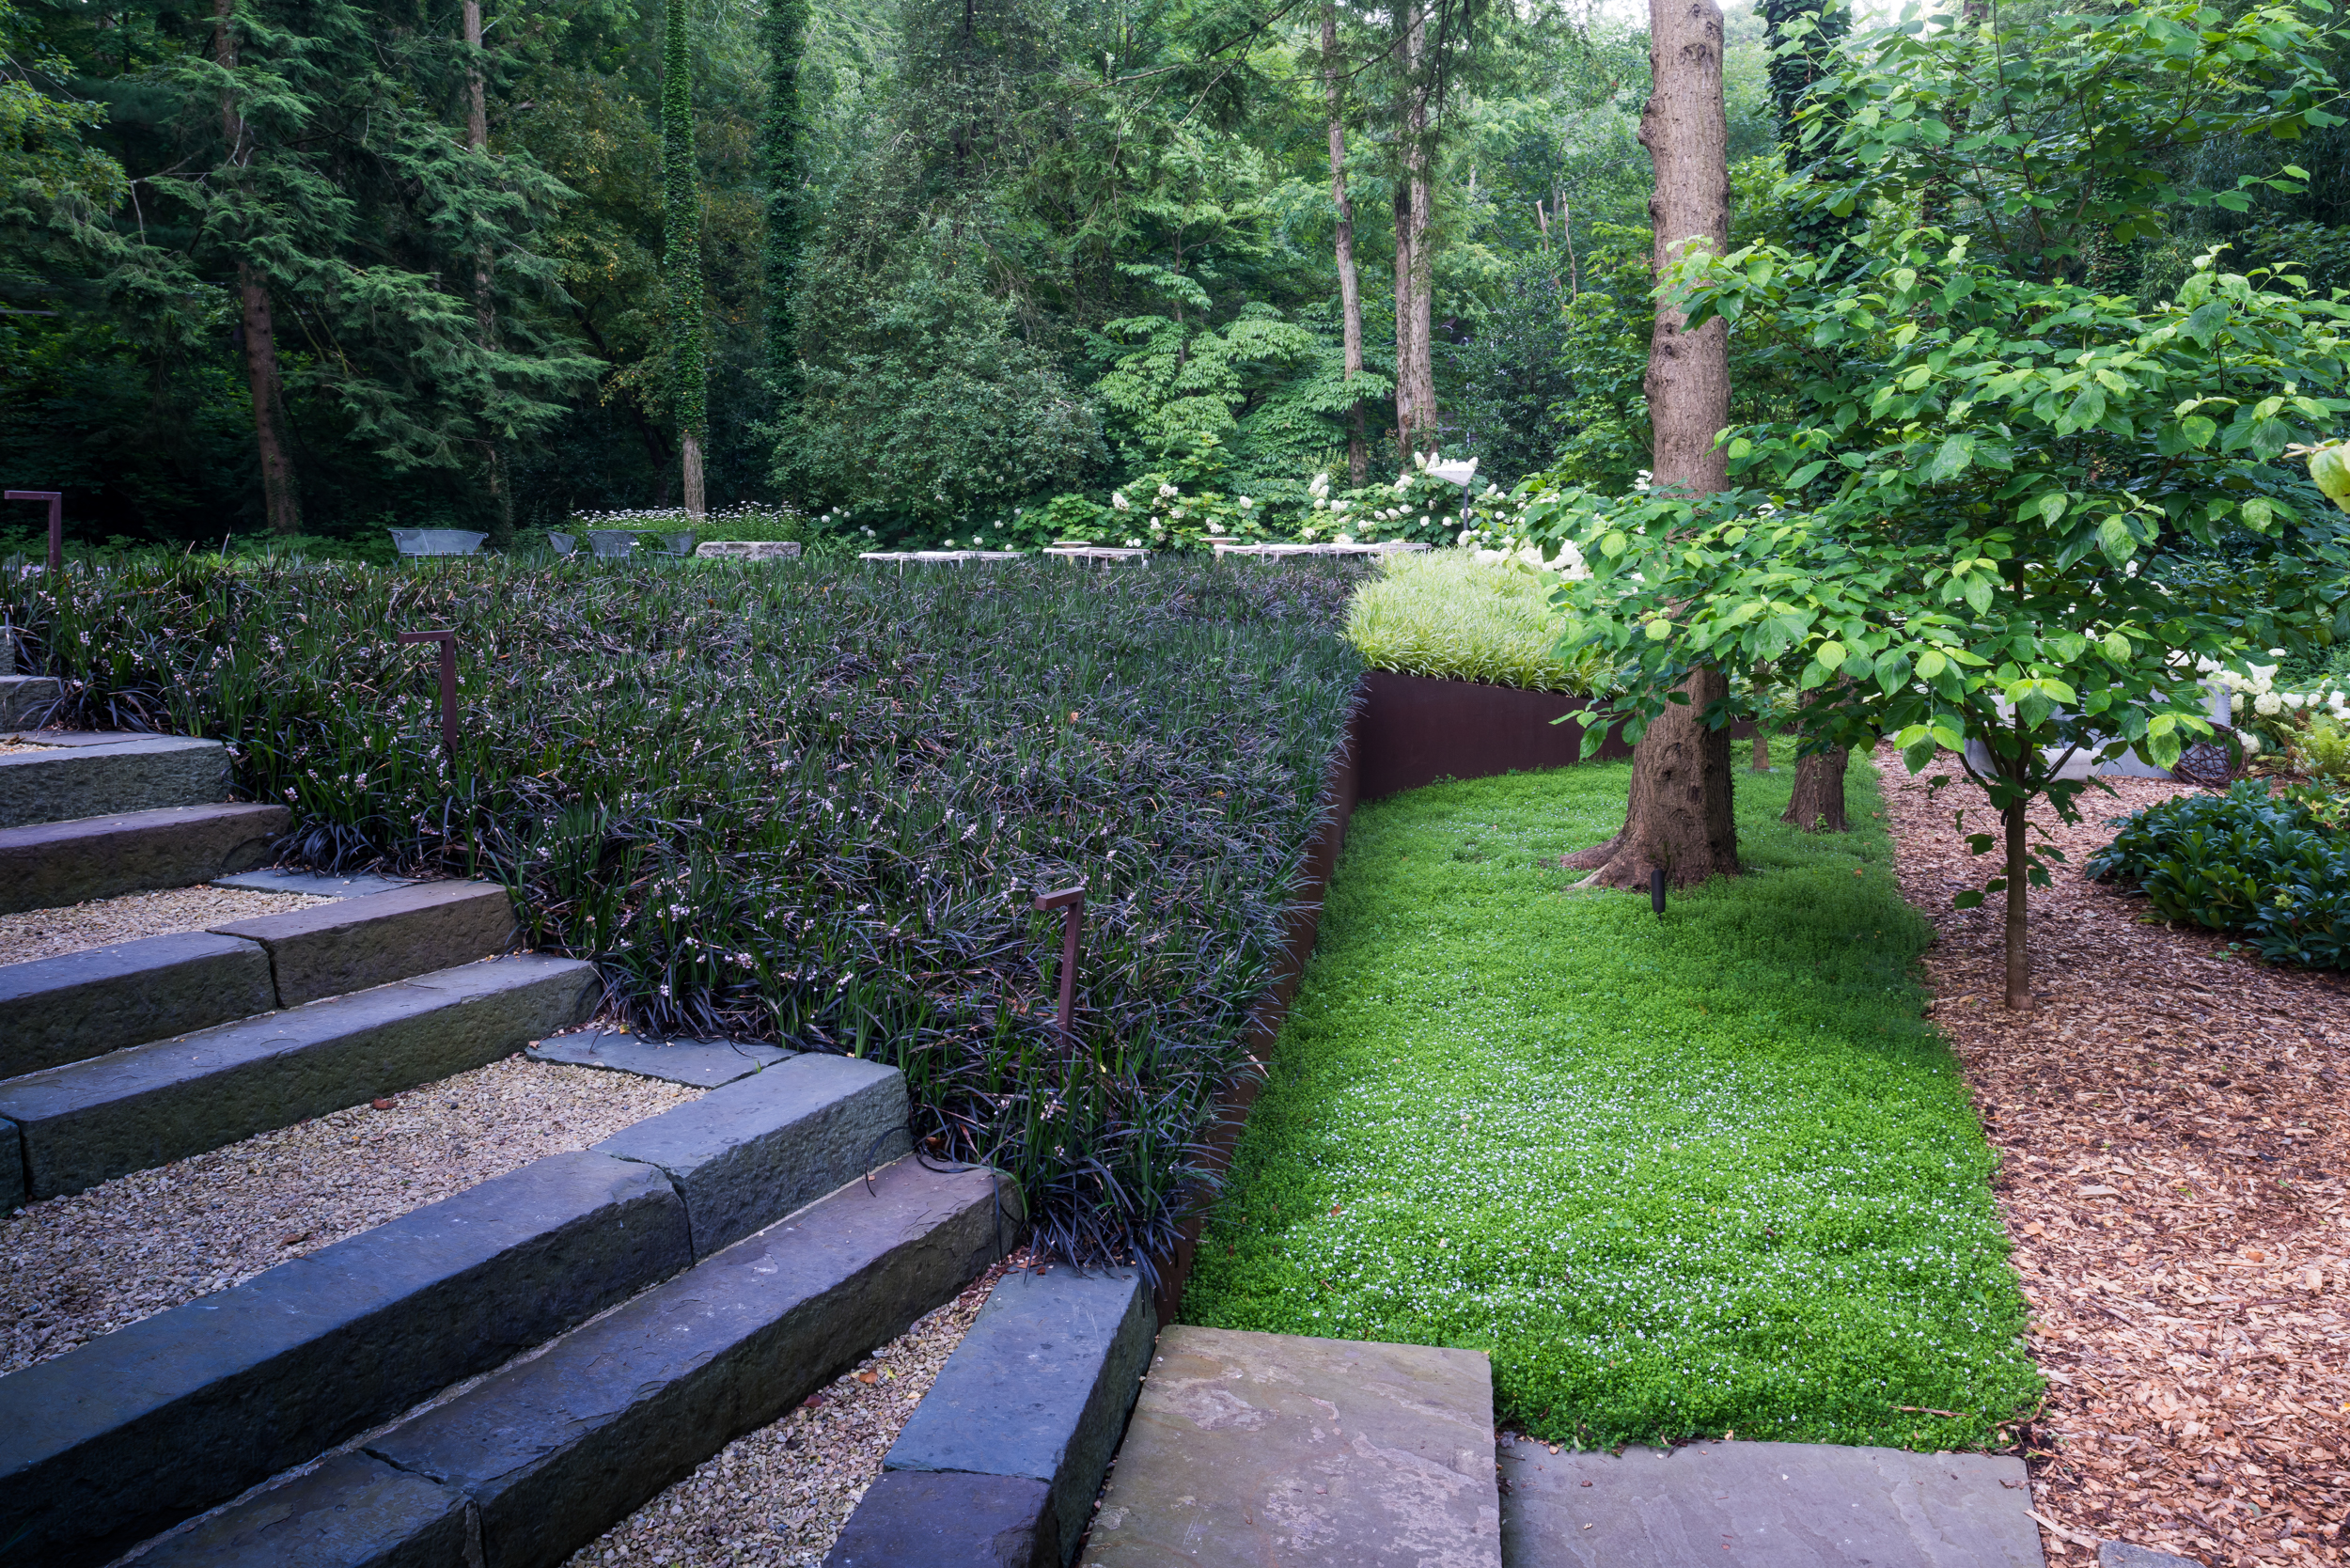 Garden with strongly geometric forms and massplanting